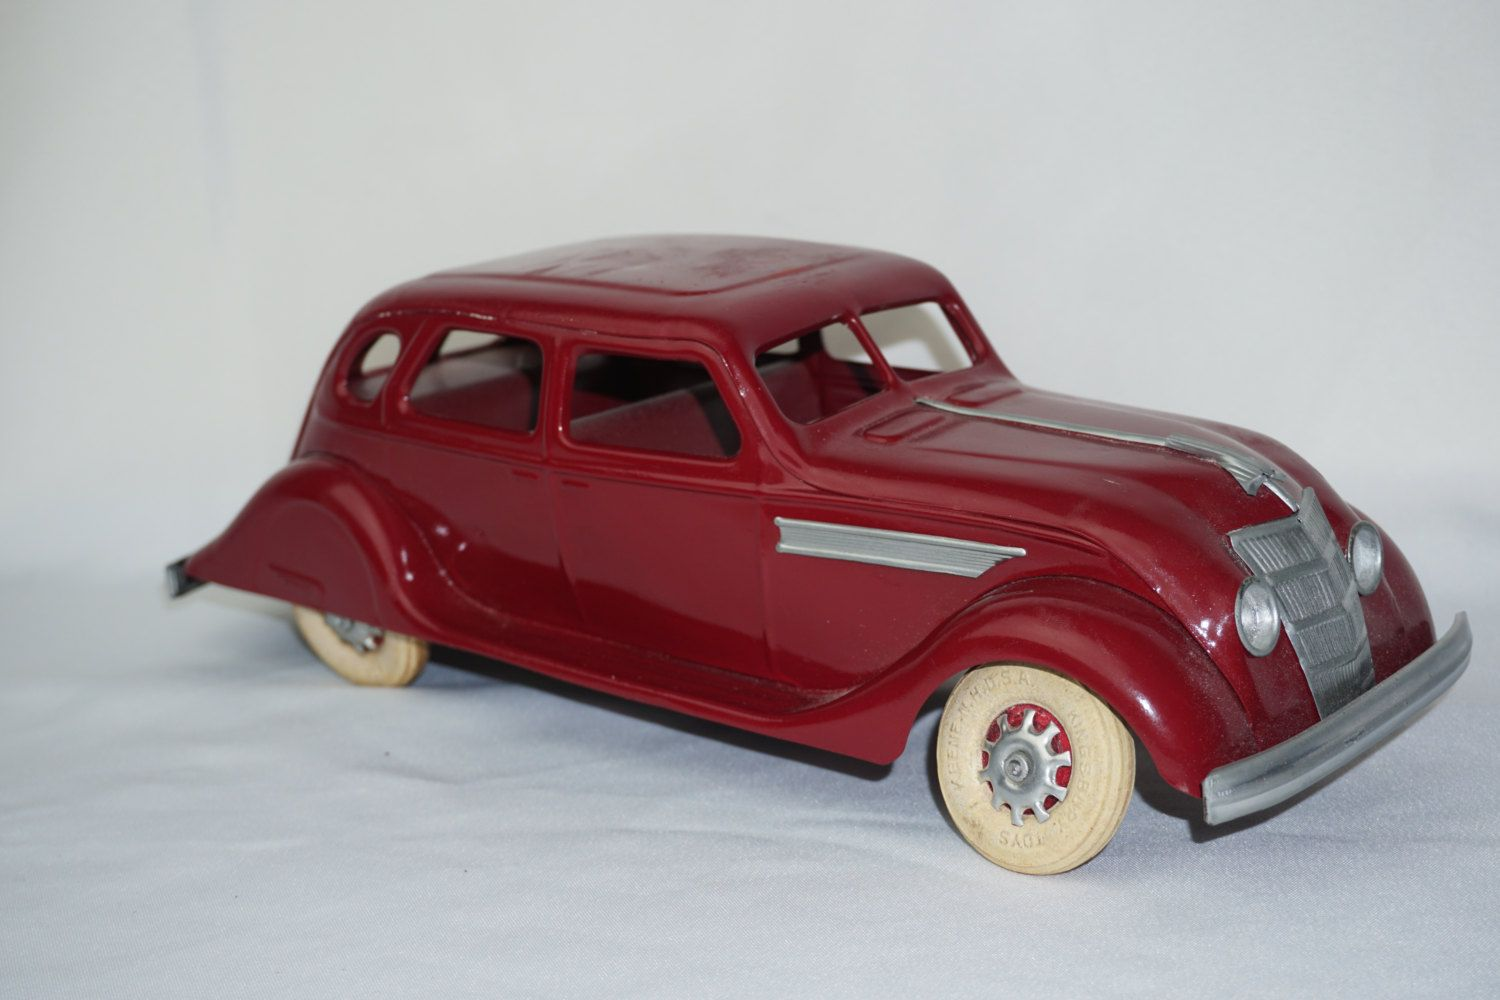 1930 39 S Kingsbury Chrysler Airflow Pressed Steel Sedan Wind Up Needs Tlc Chrysler Airflow Plastic Model Cars Pressed Steel Toy